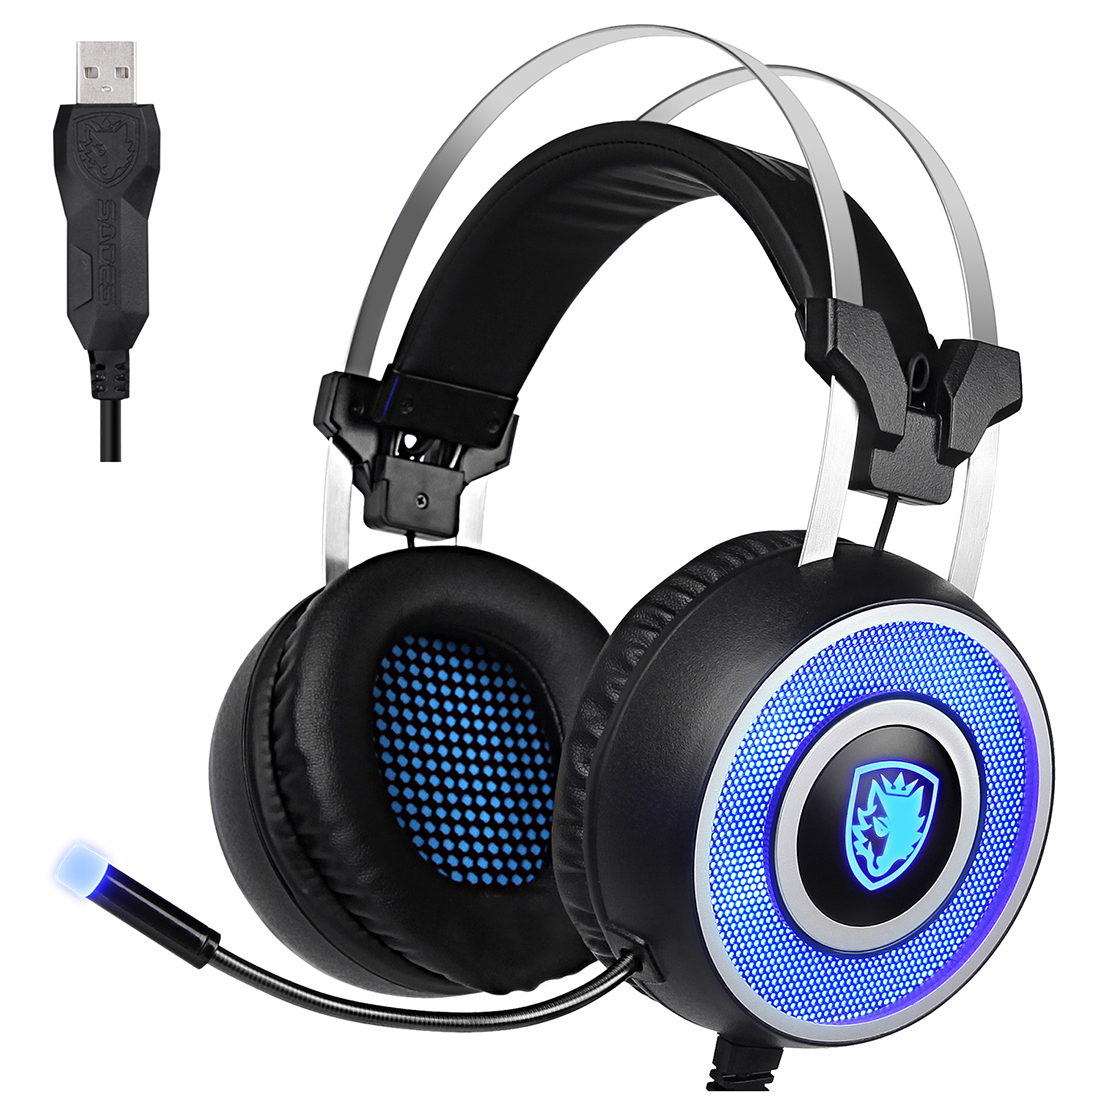 SADES A9 Gaming Headset,USB Over Ear Gaming Headphones with Microphone ,7 colors Breathing LED Lighting for PC(Black and Blue) each g1100 shake e sports gaming mic led light headset headphone casque with 7 1 heavy bass surround sound for pc gamer